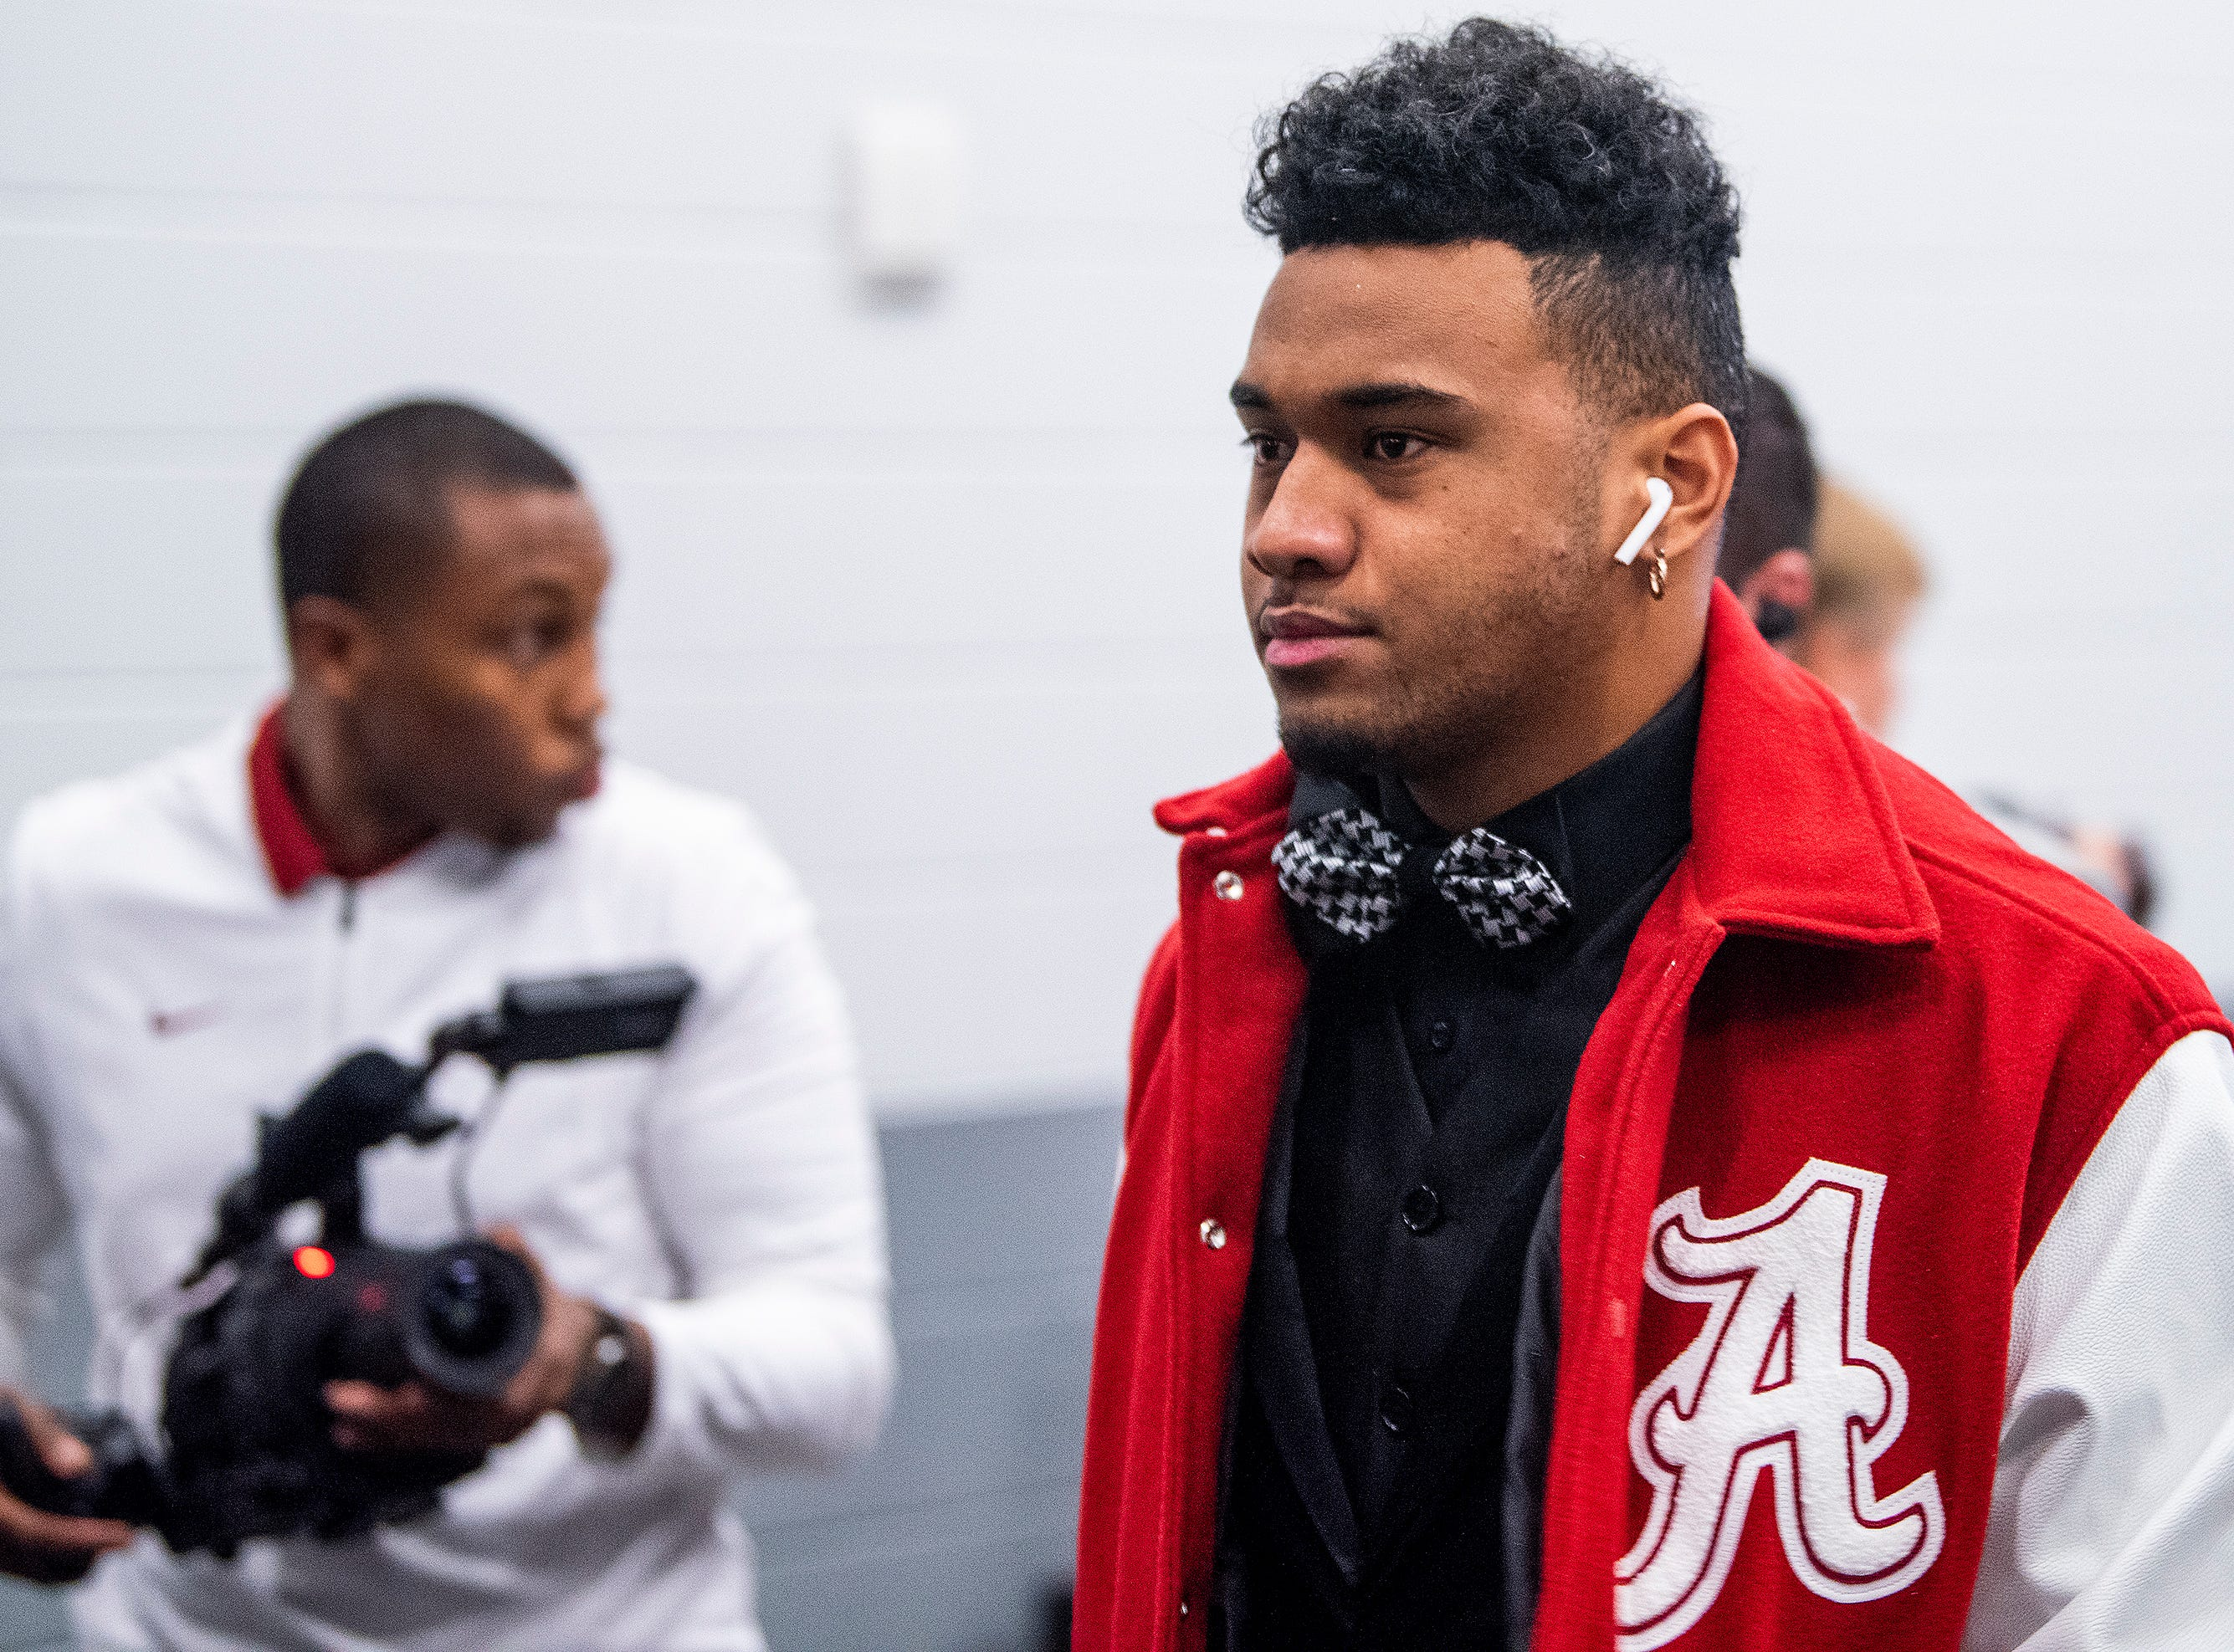 Alabama quarterback Tua Tagovailoa (13) arrives with the team before the SEC Championship Game at Mercedes Benz Stadium in Atlanta, Ga., on Saturday December 1, 2018.